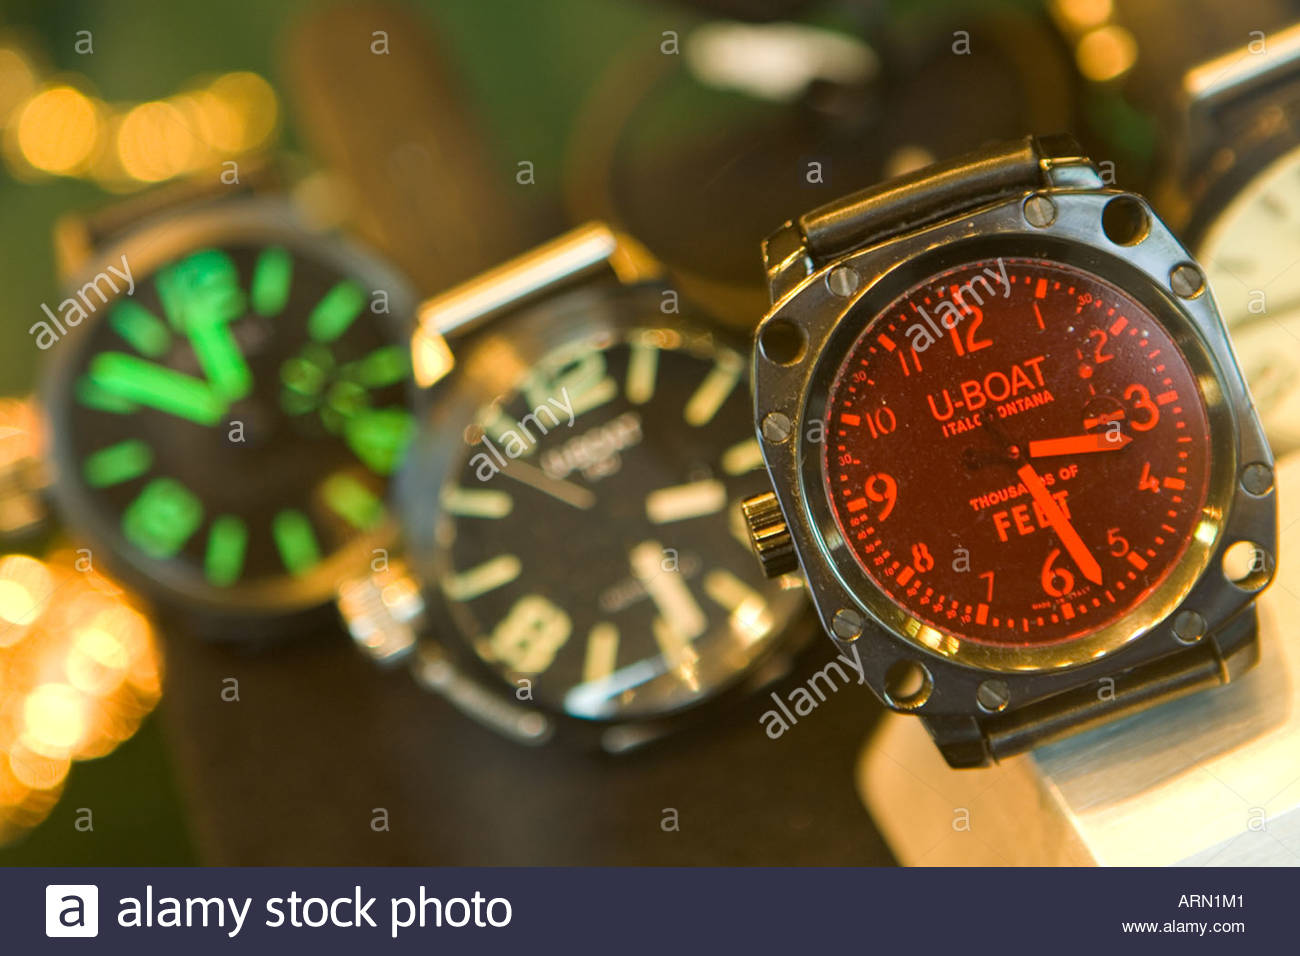 u-boat watches in a shop window on the ponte vecchio in florence - Stock Image